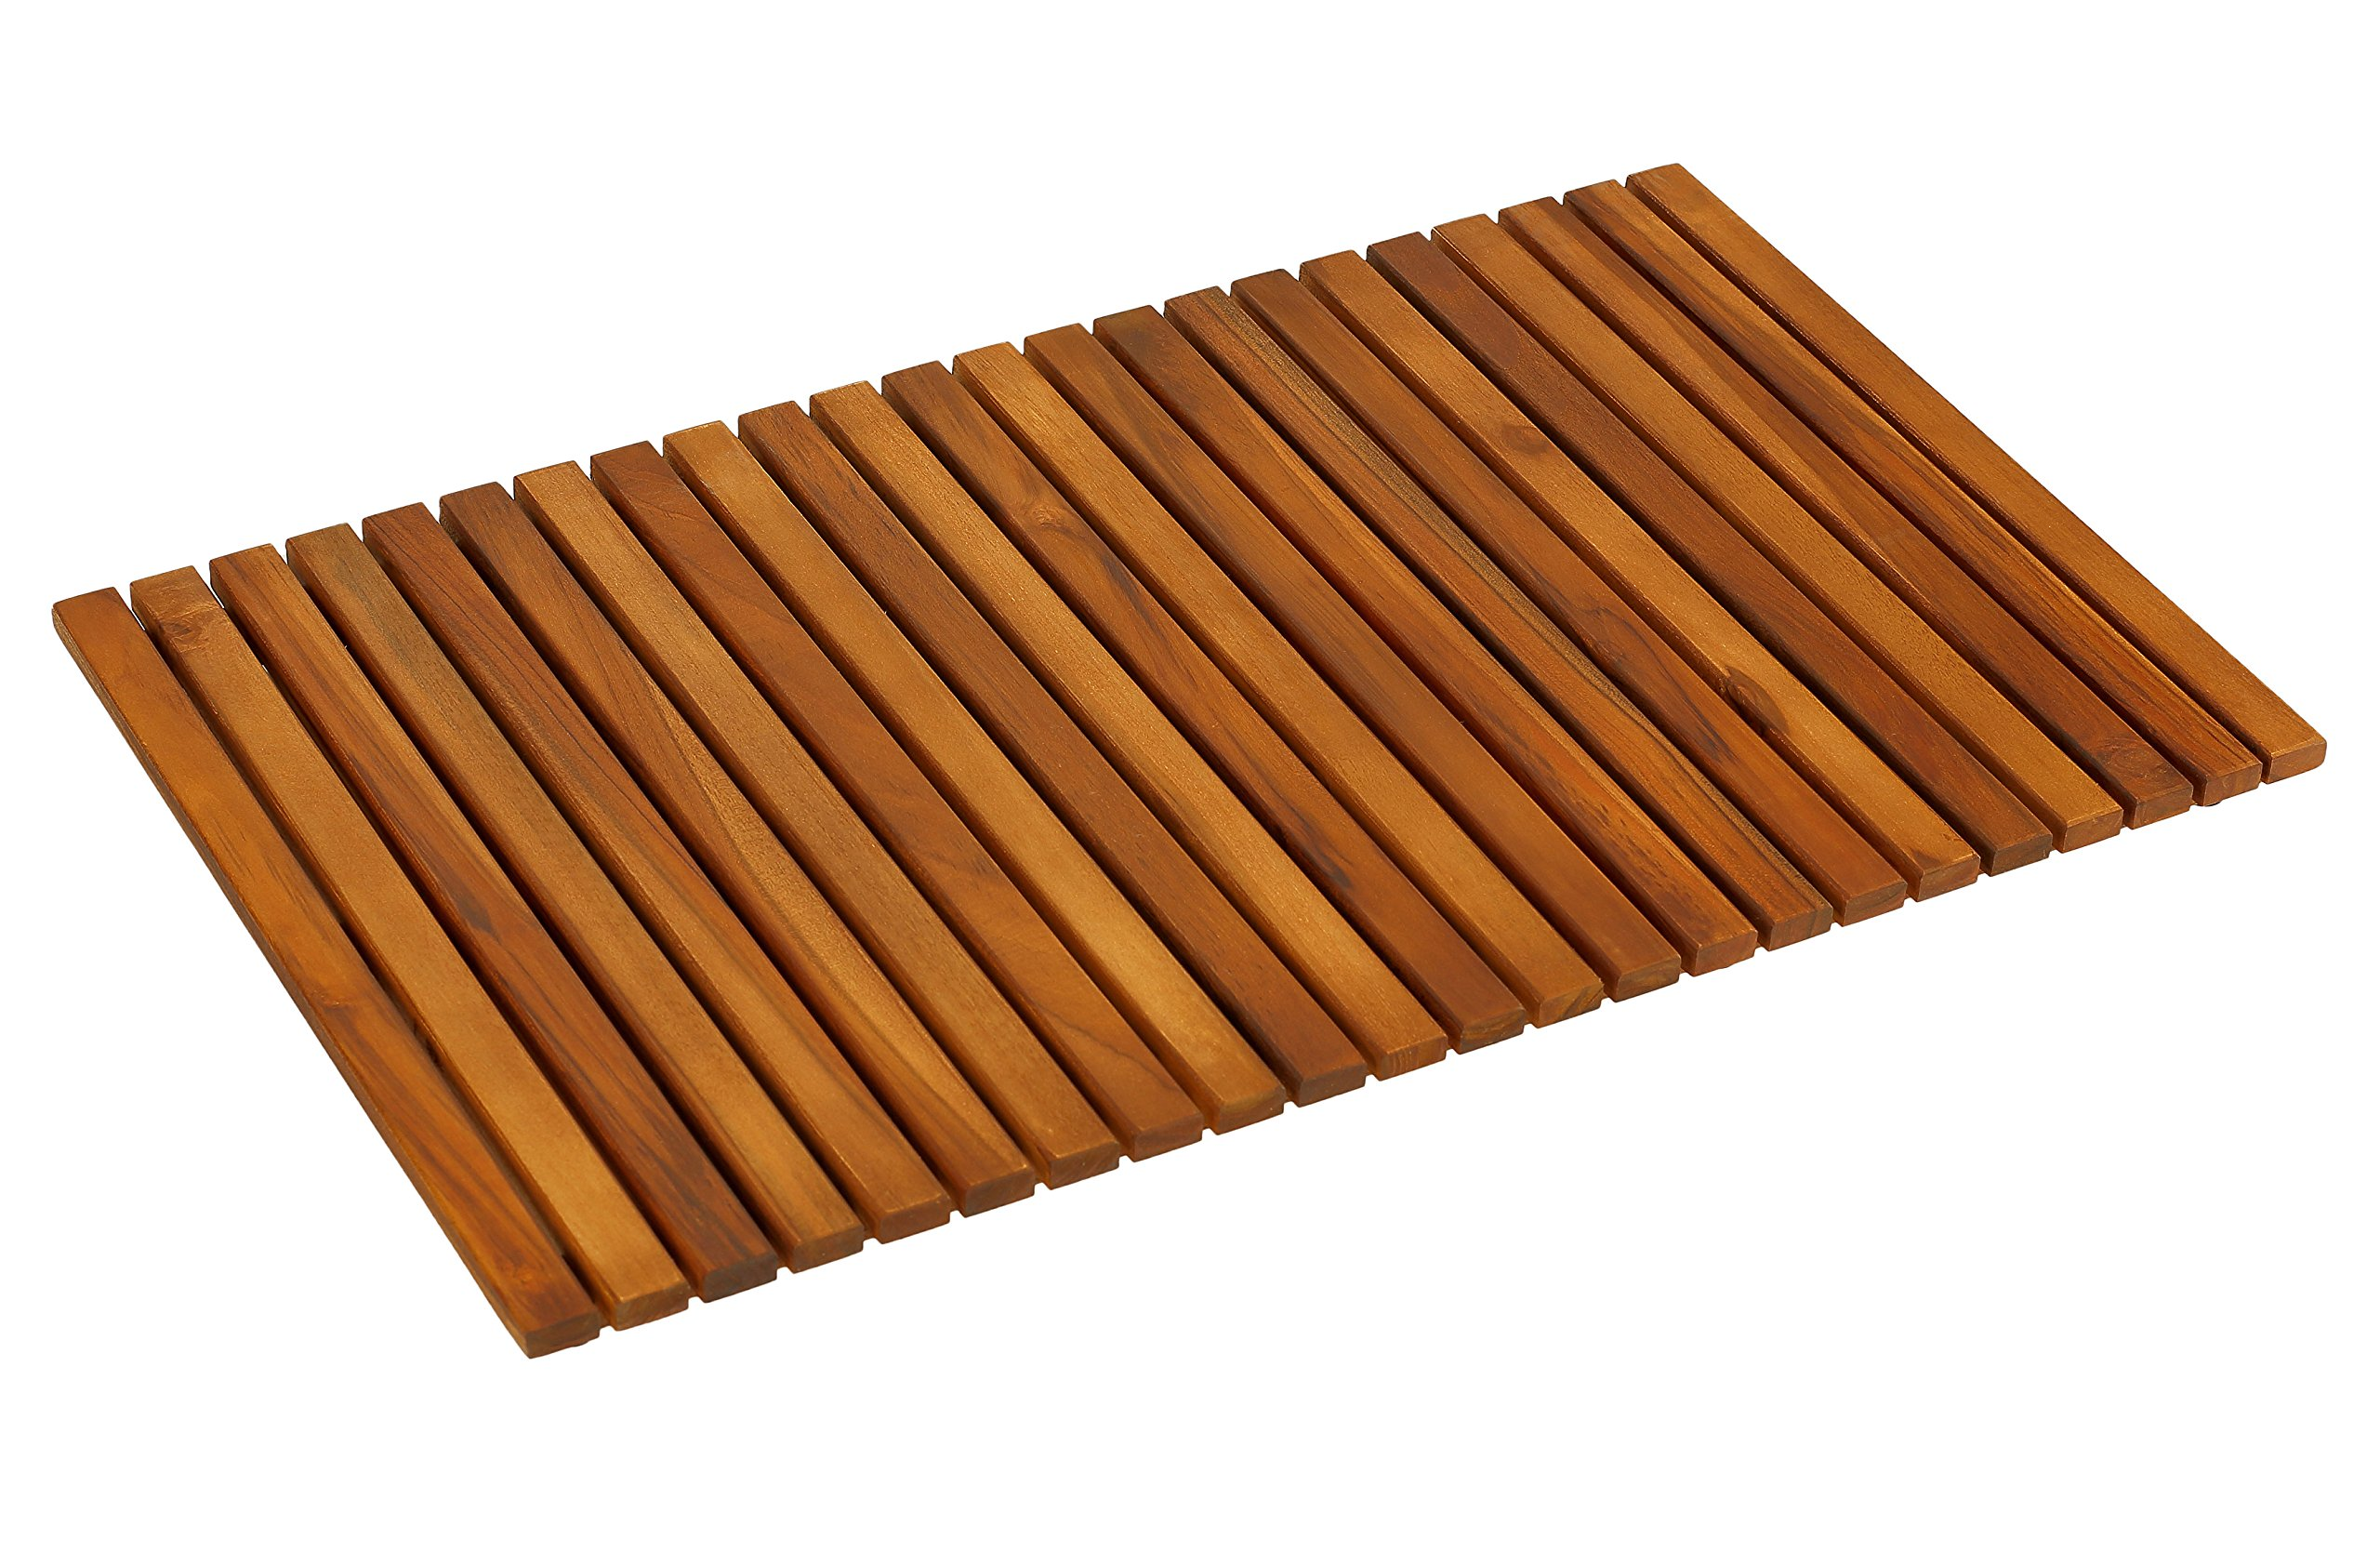 Bare Decor Nori Shower, Spa, Door Mat in Solid Teak Wood and Oiled Finish, Large: 31.5'' x 19.5''